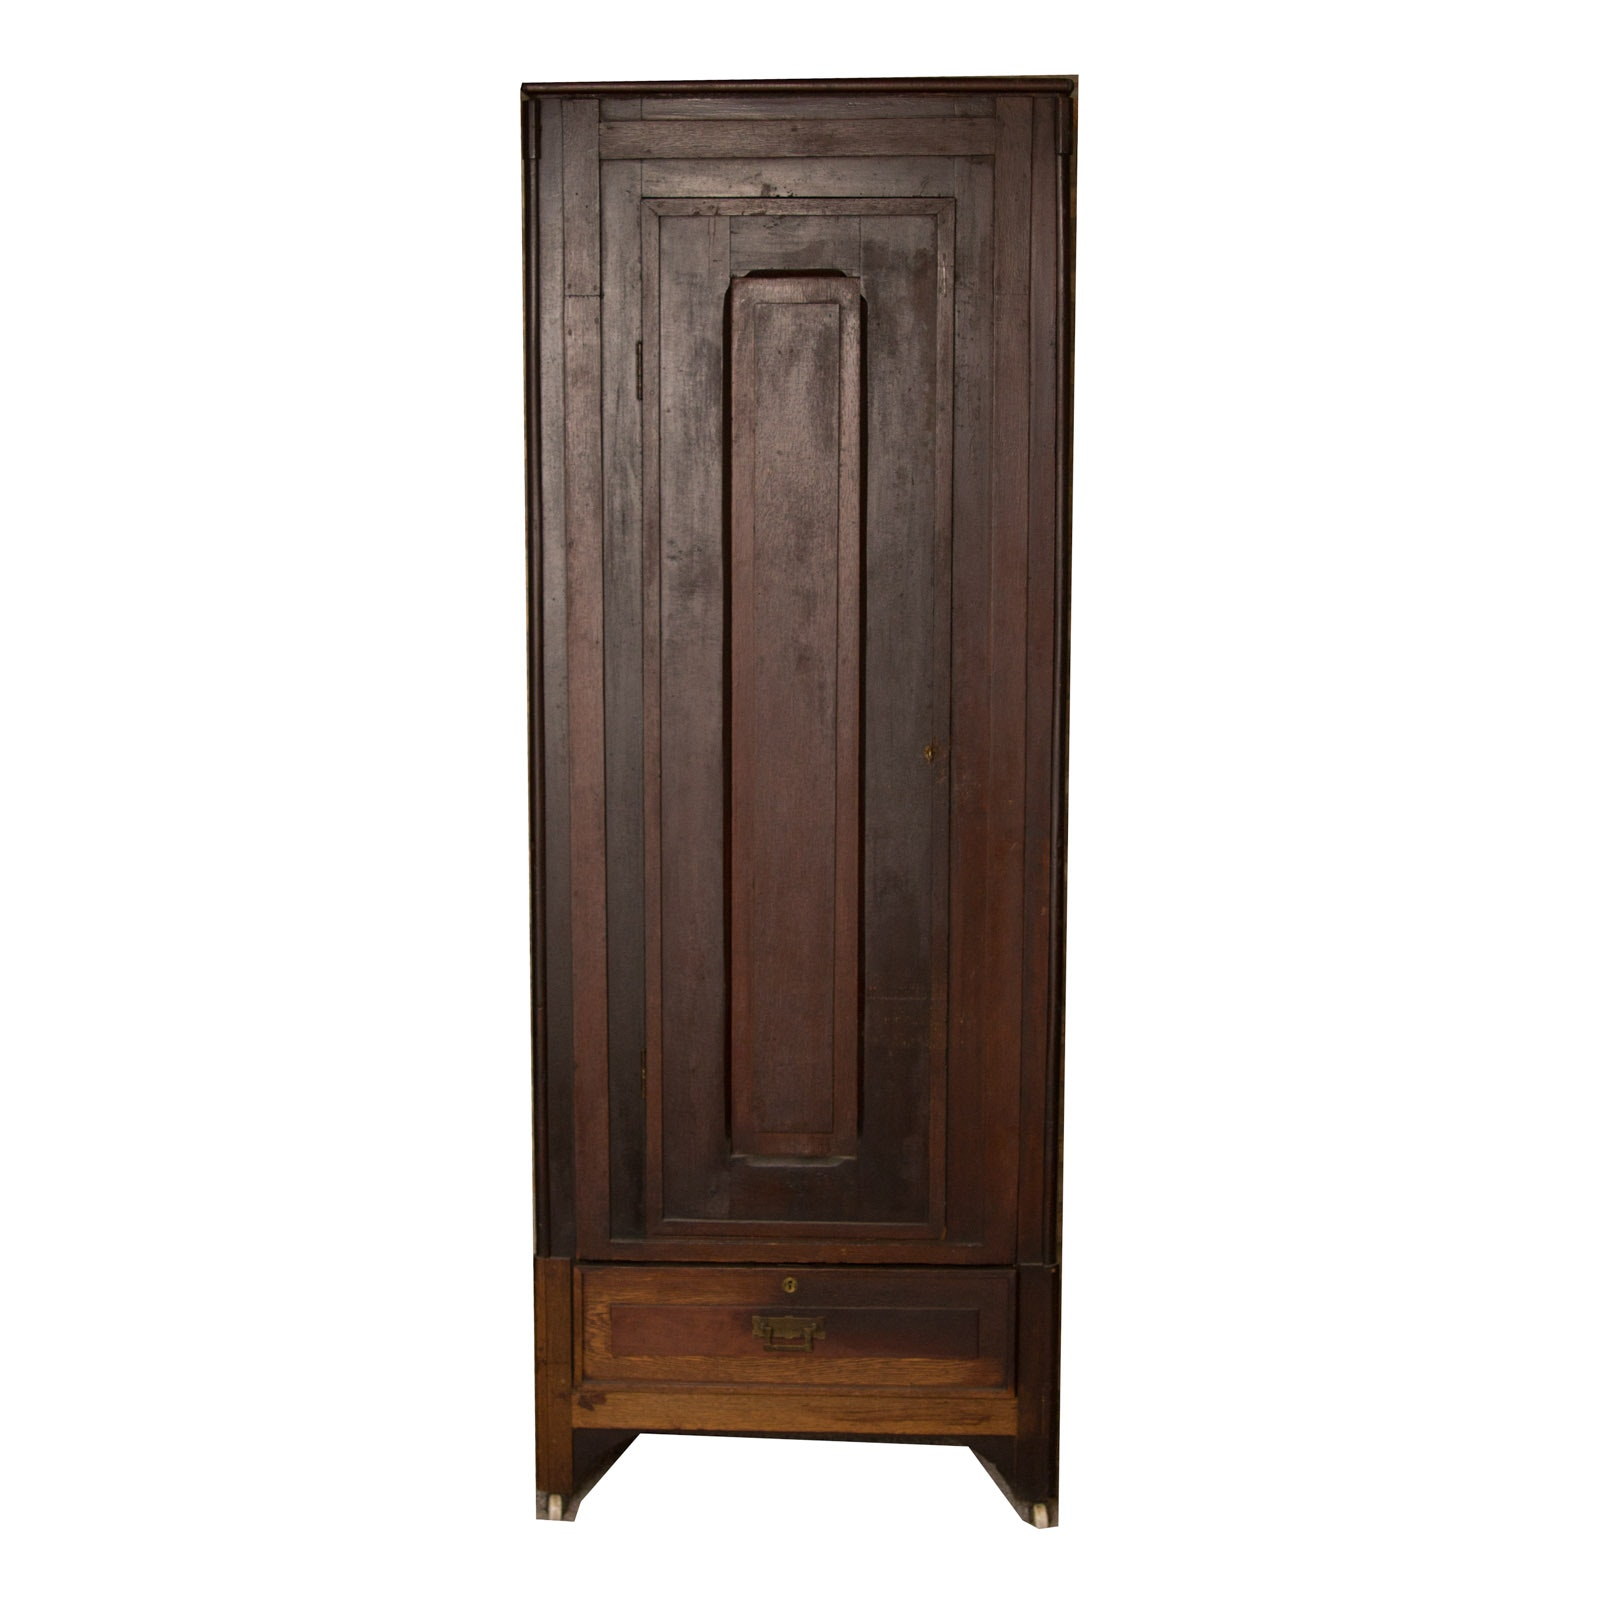 Antique to Vintage Wooden Armoire